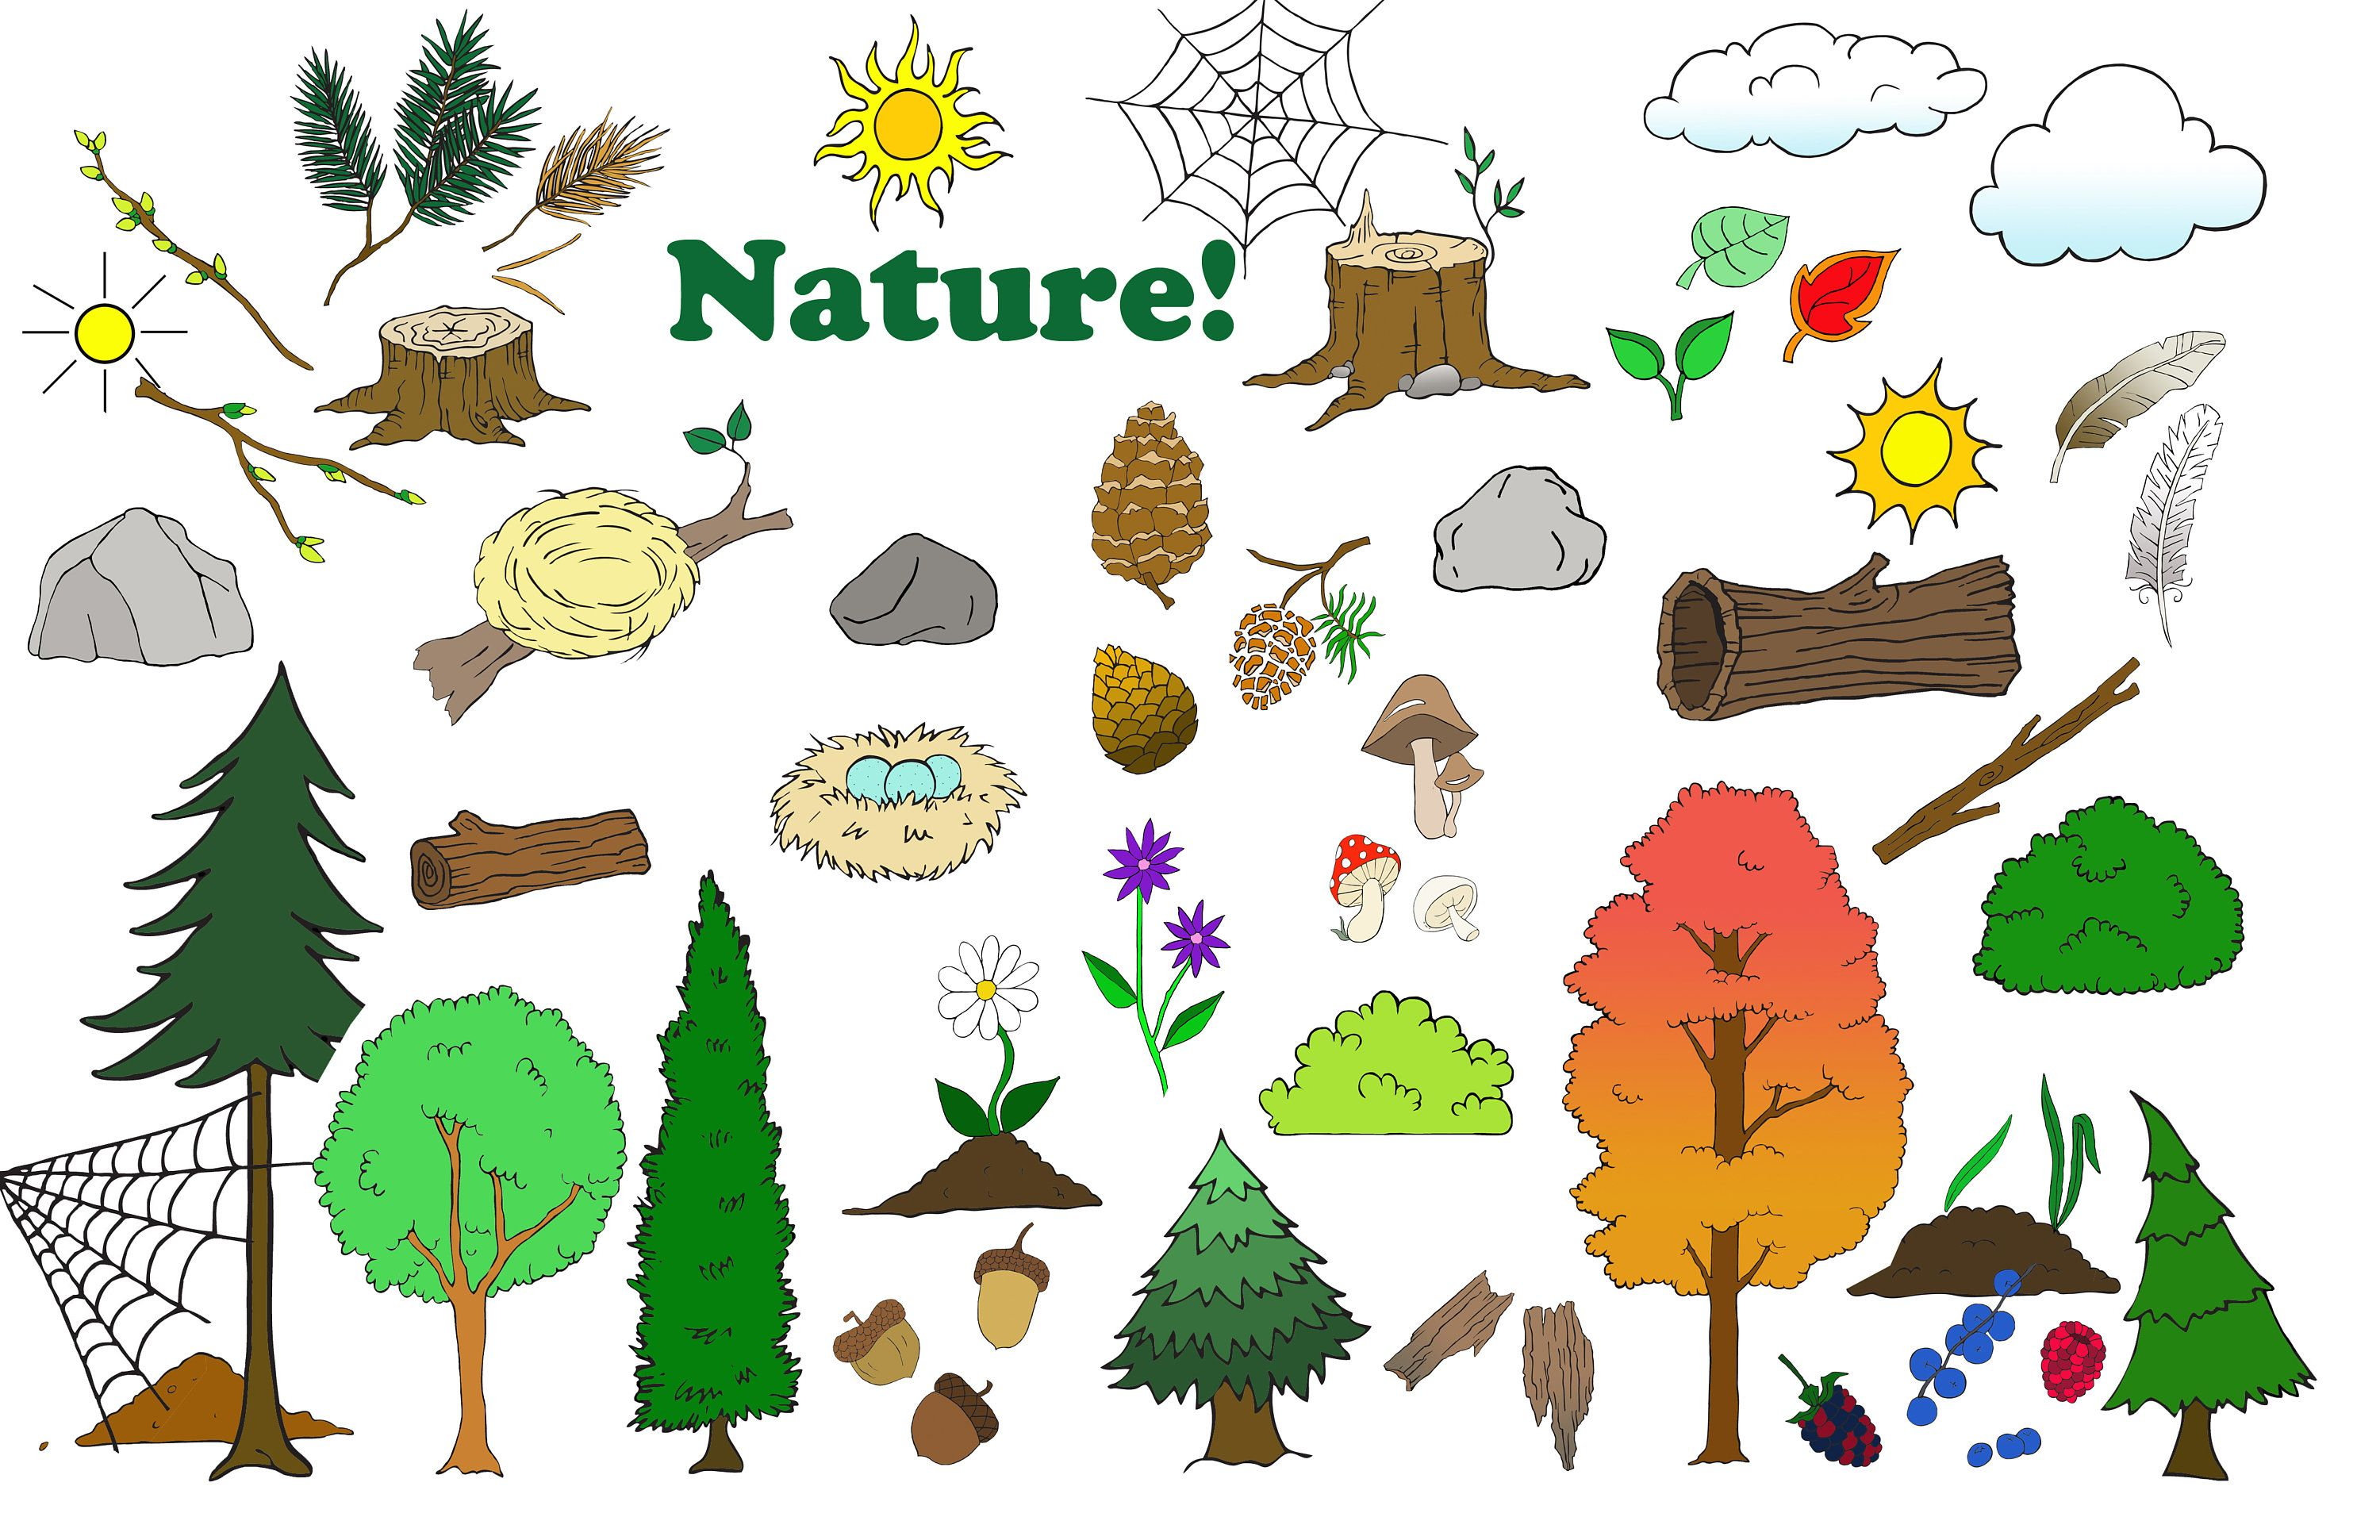 Camping Clipart Animal Clipart Nature Tree Adventure Etsy Animal Clipart Clip Art Camping Clipart